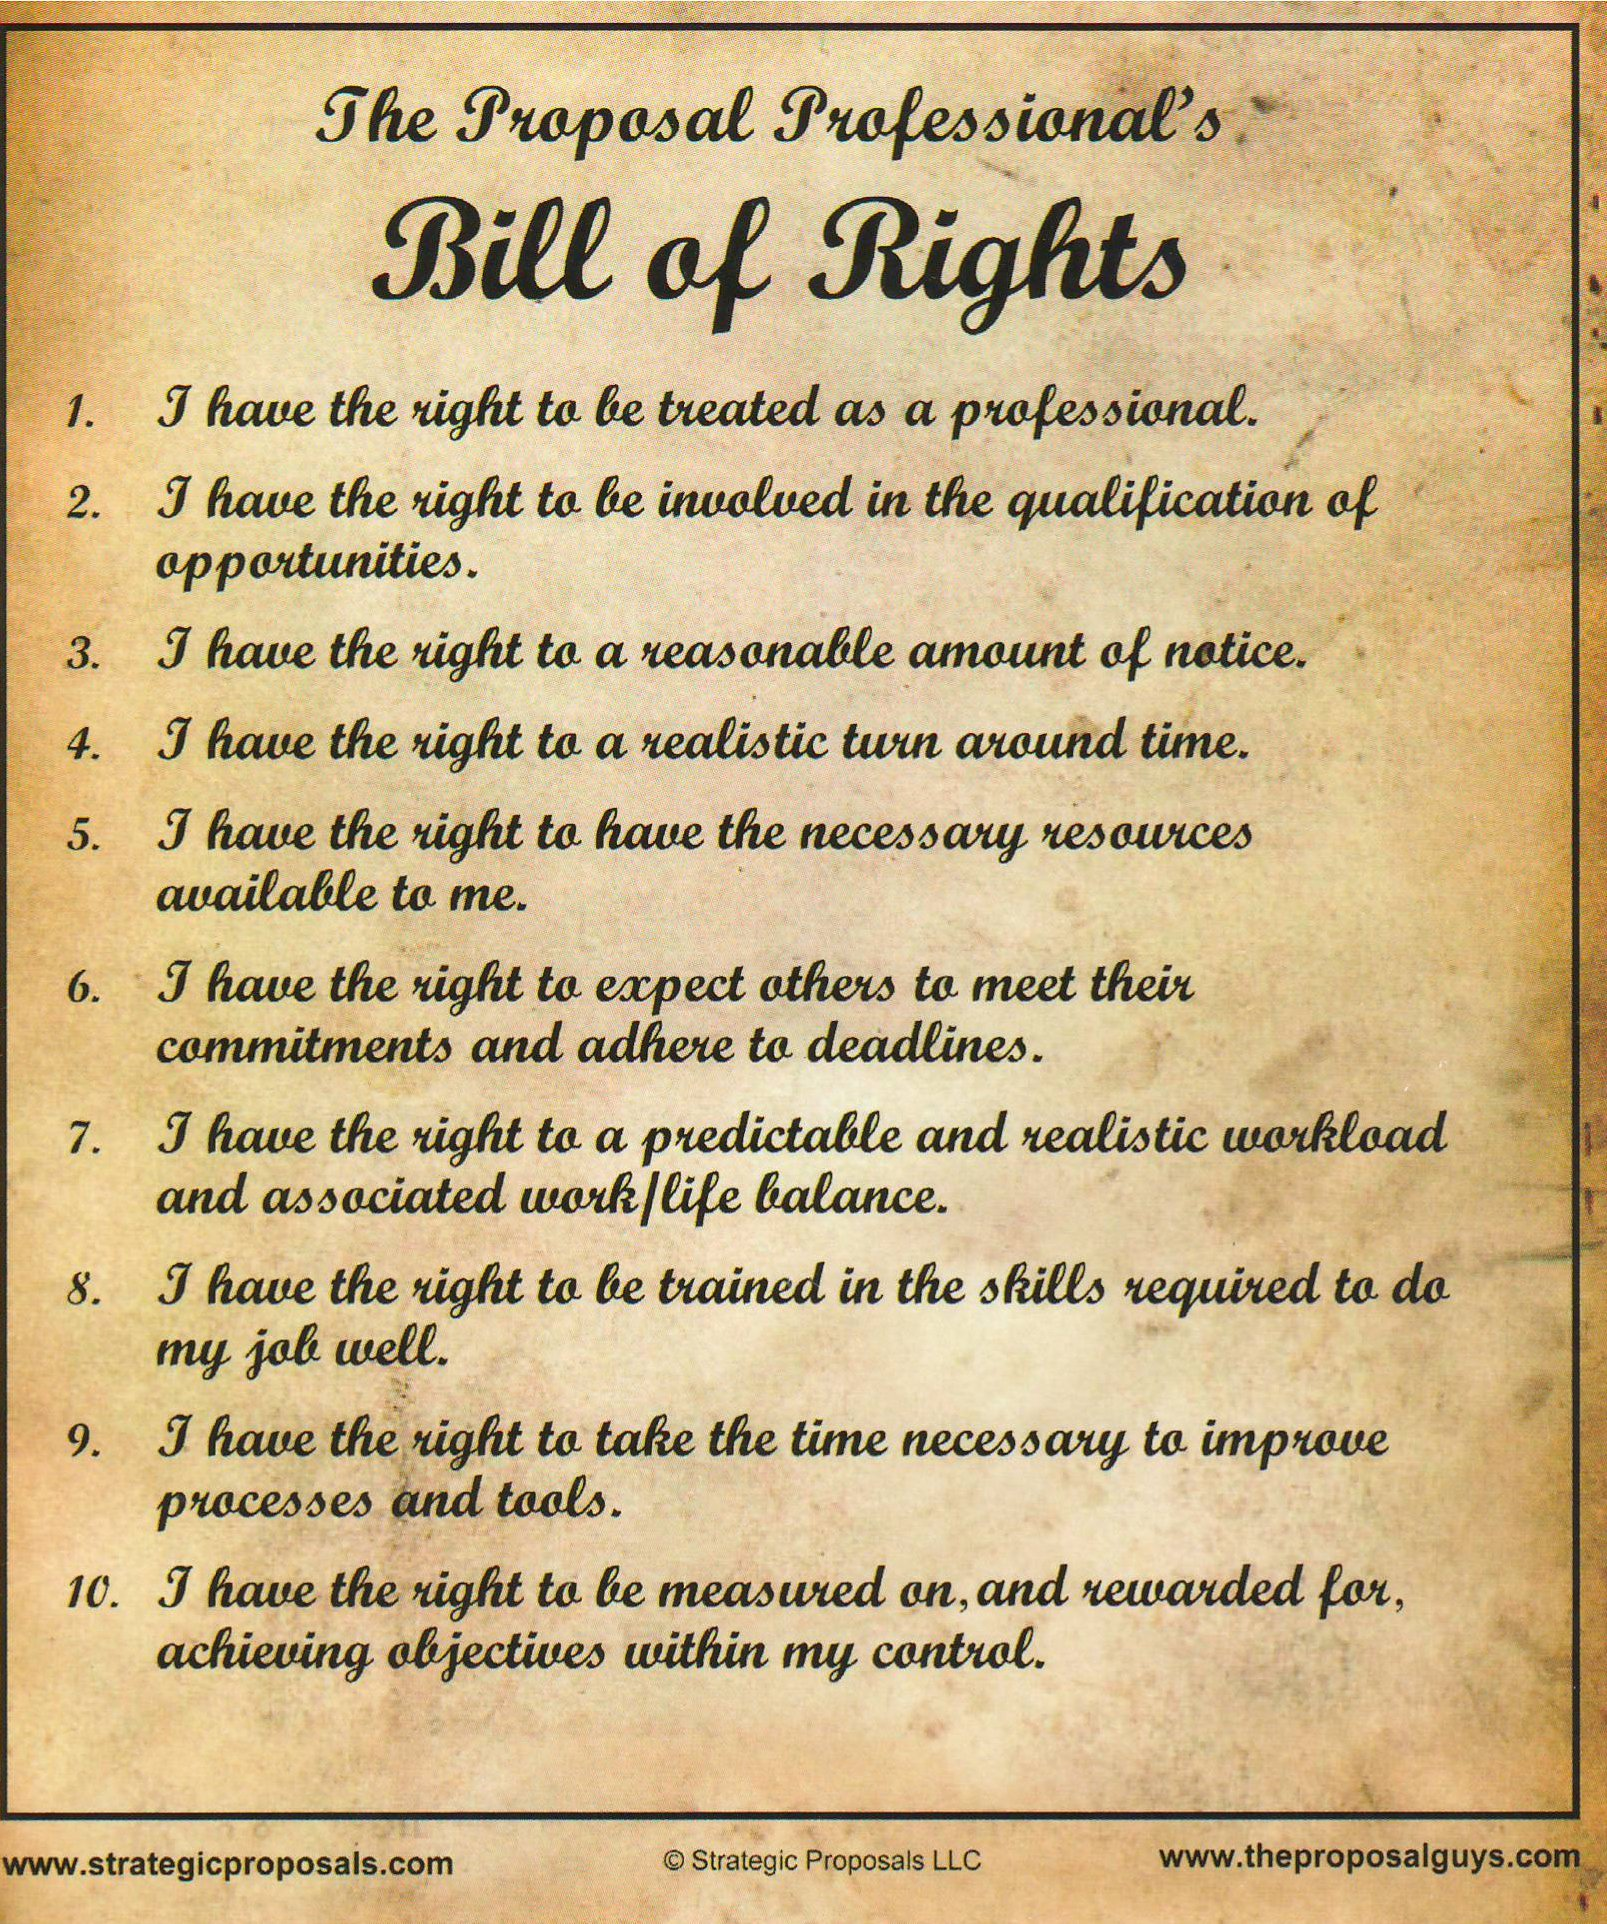 bill of rights amendments essay Maliaka nelson pos 301 jonathan roeder bill of rights this essay will focus on what the 1st amendment and how it guarantees freedom to american citizens, and.